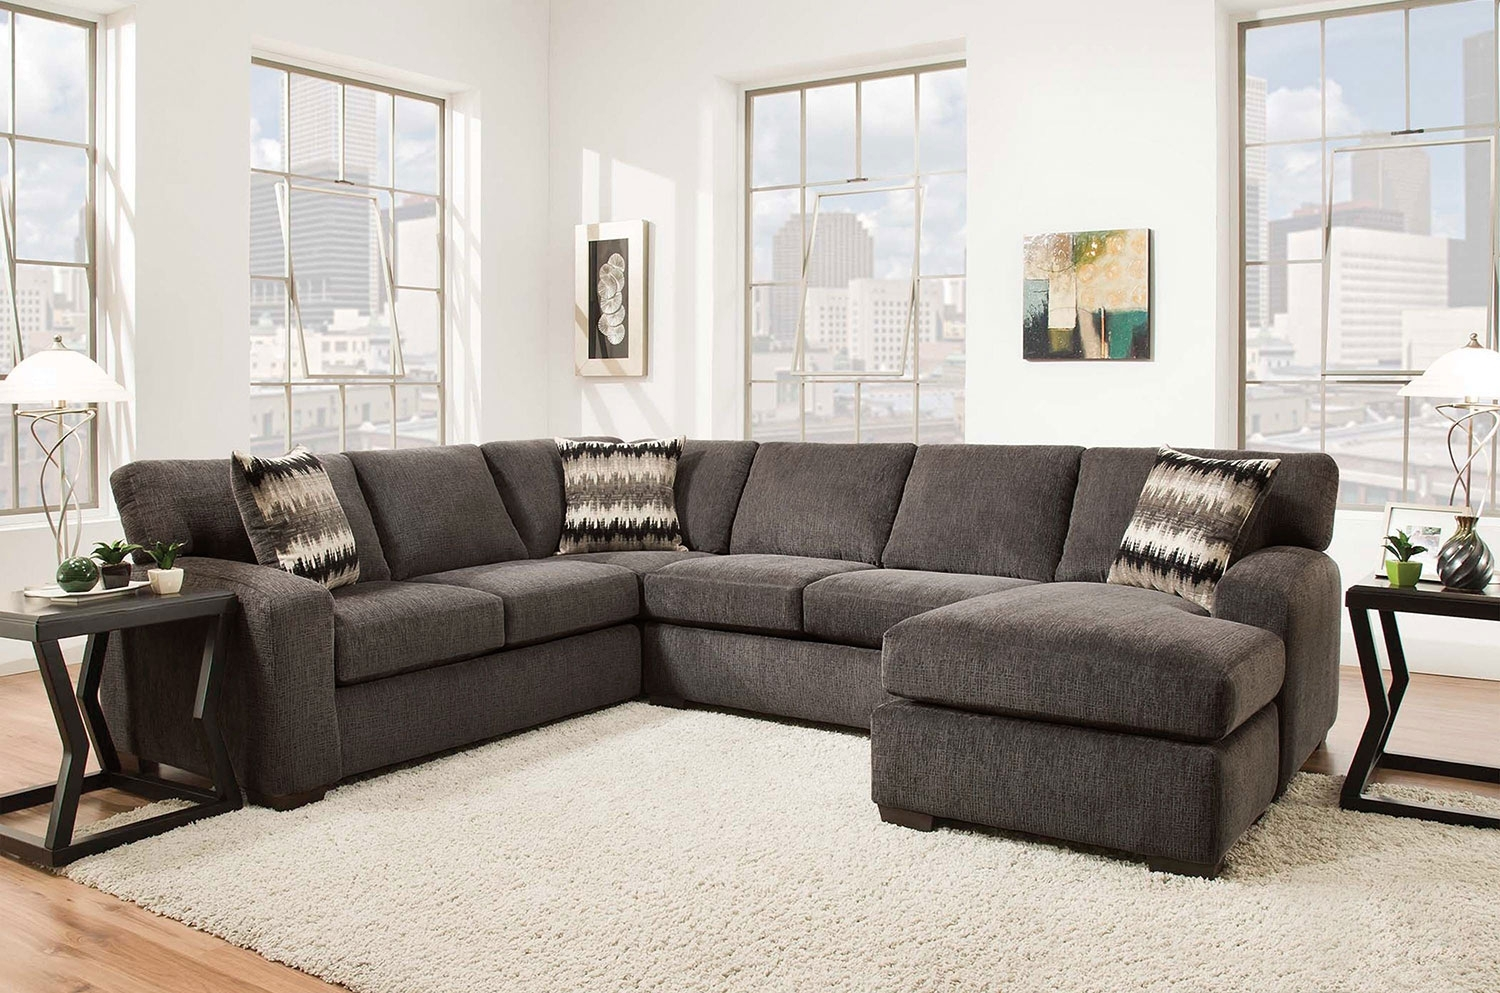 Fenella 2 Piece Right Facing Sectional – Smoke | Levin Furniture With Vt Sectional Sofas (View 5 of 10)